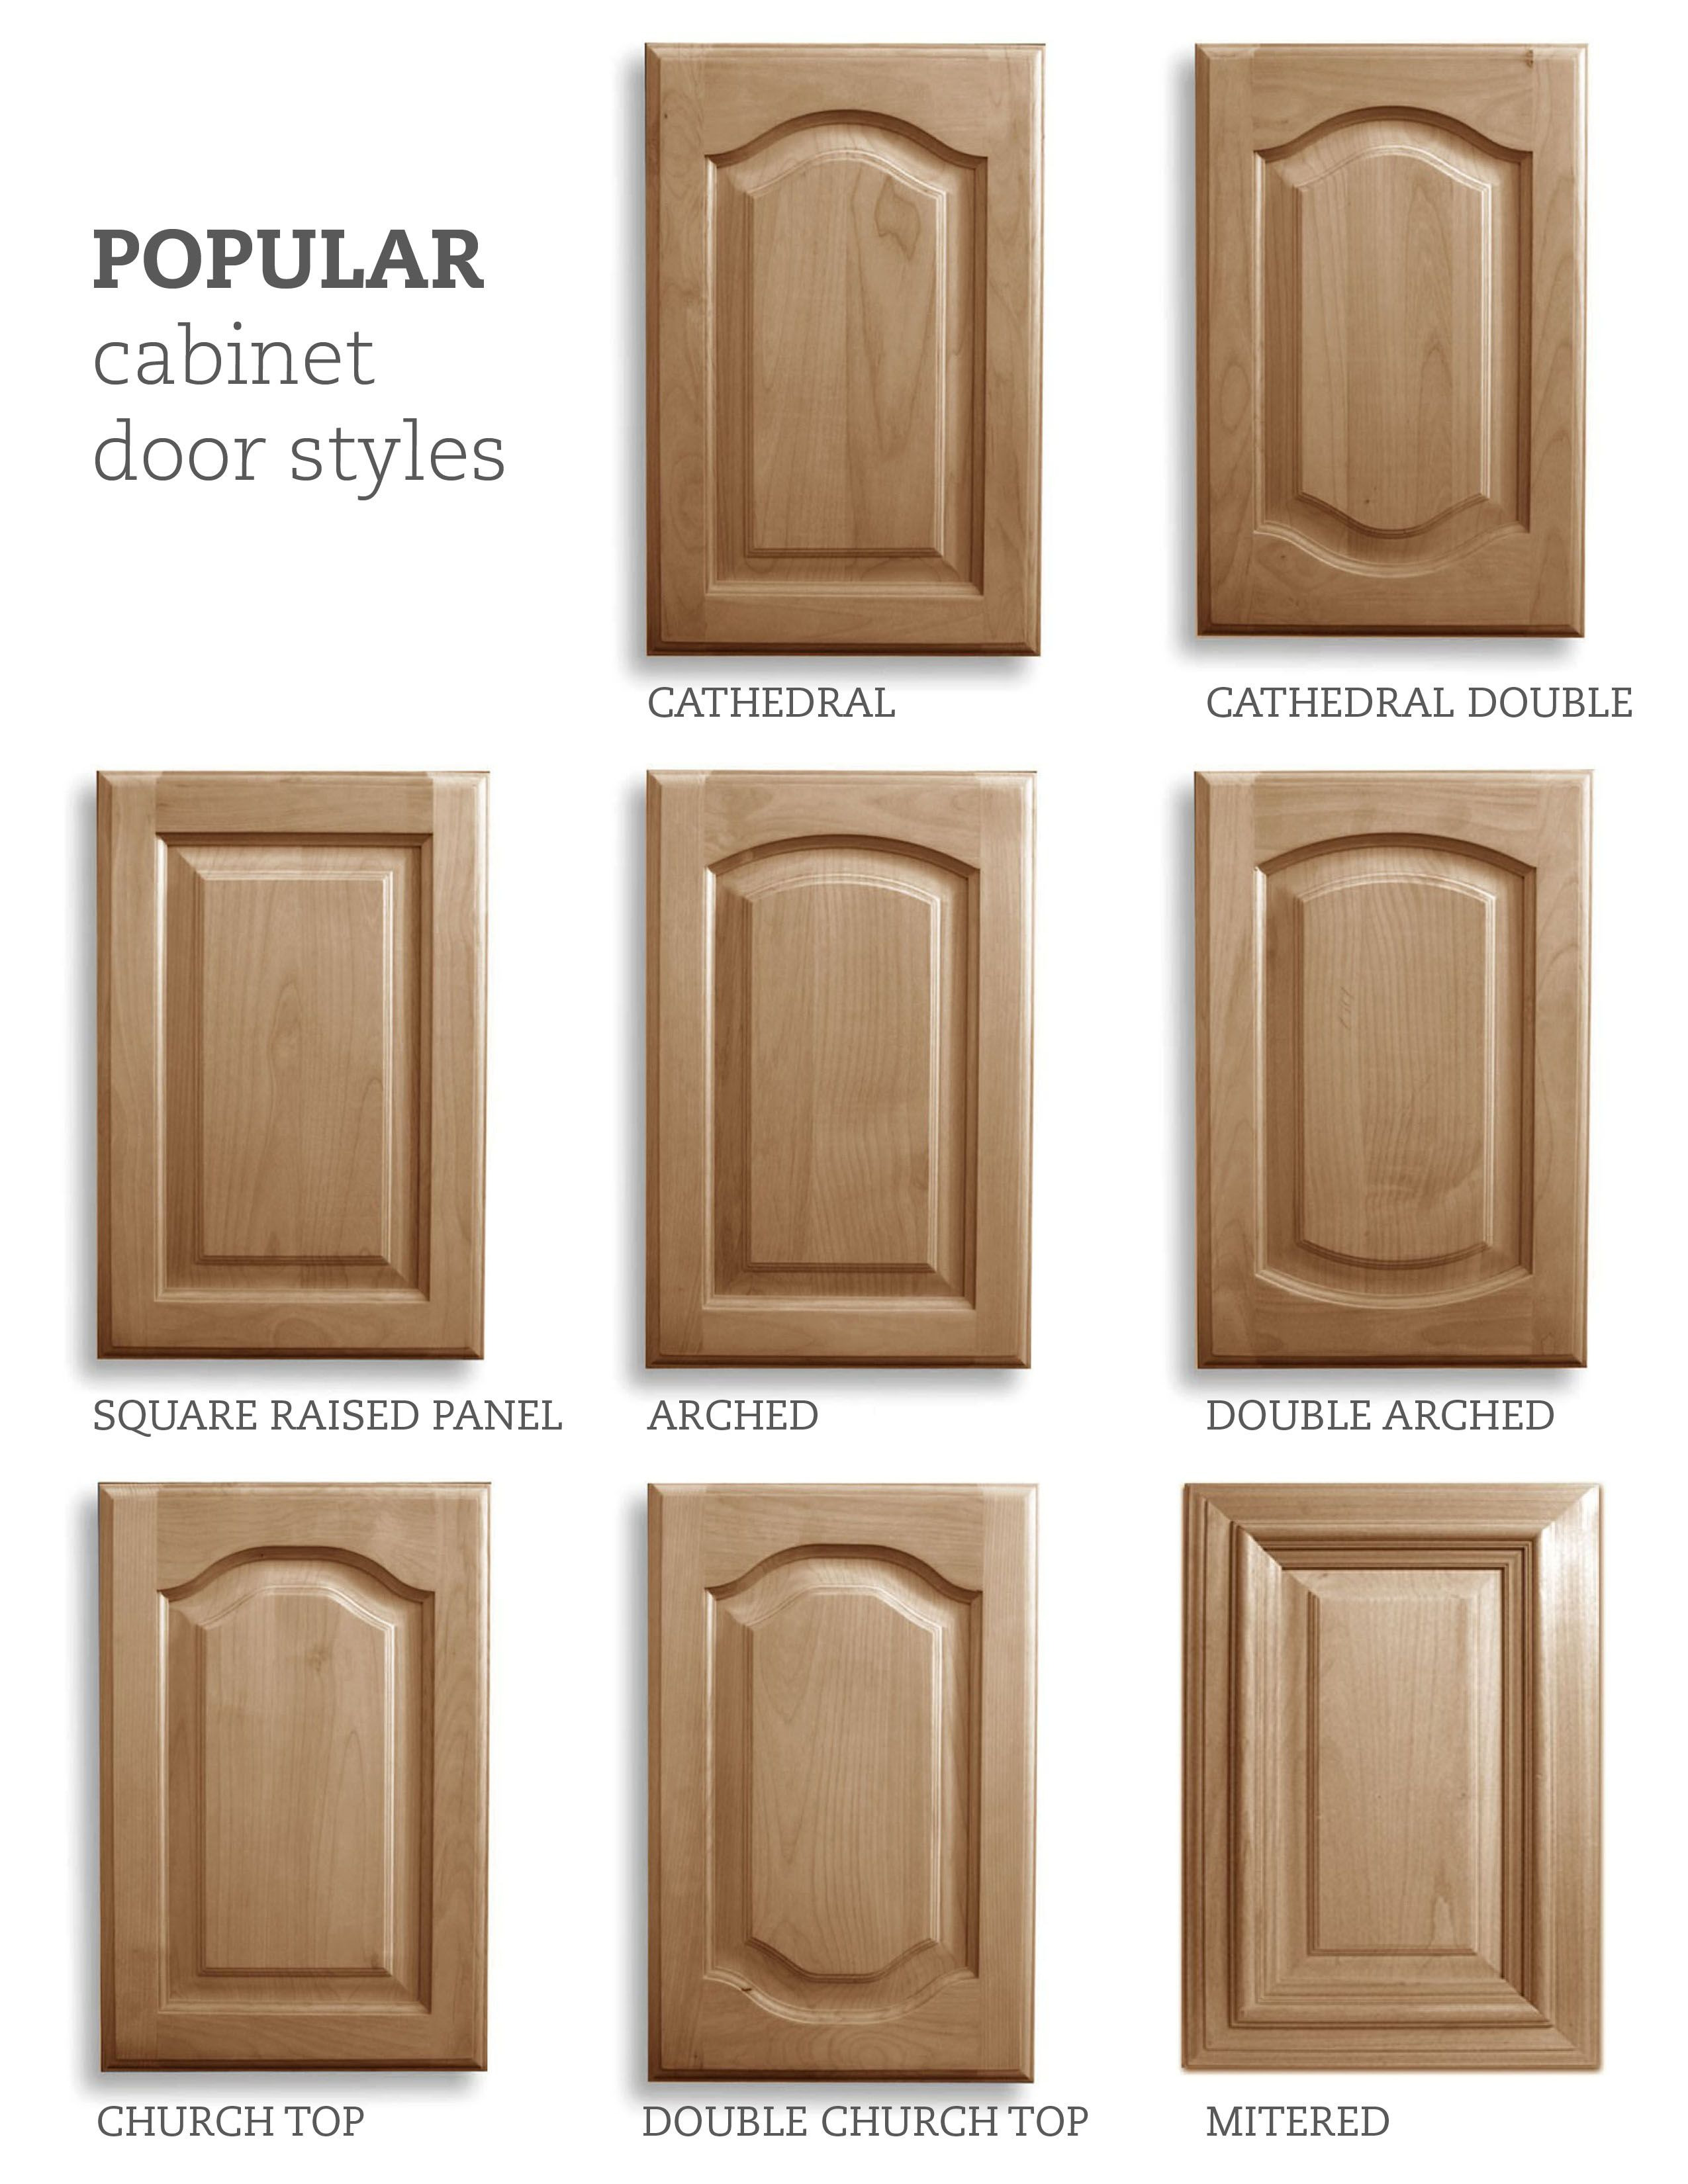 Cabinet Door Types Beautiful Popular Cabinet Door Styles Cathedral Cathedral Double